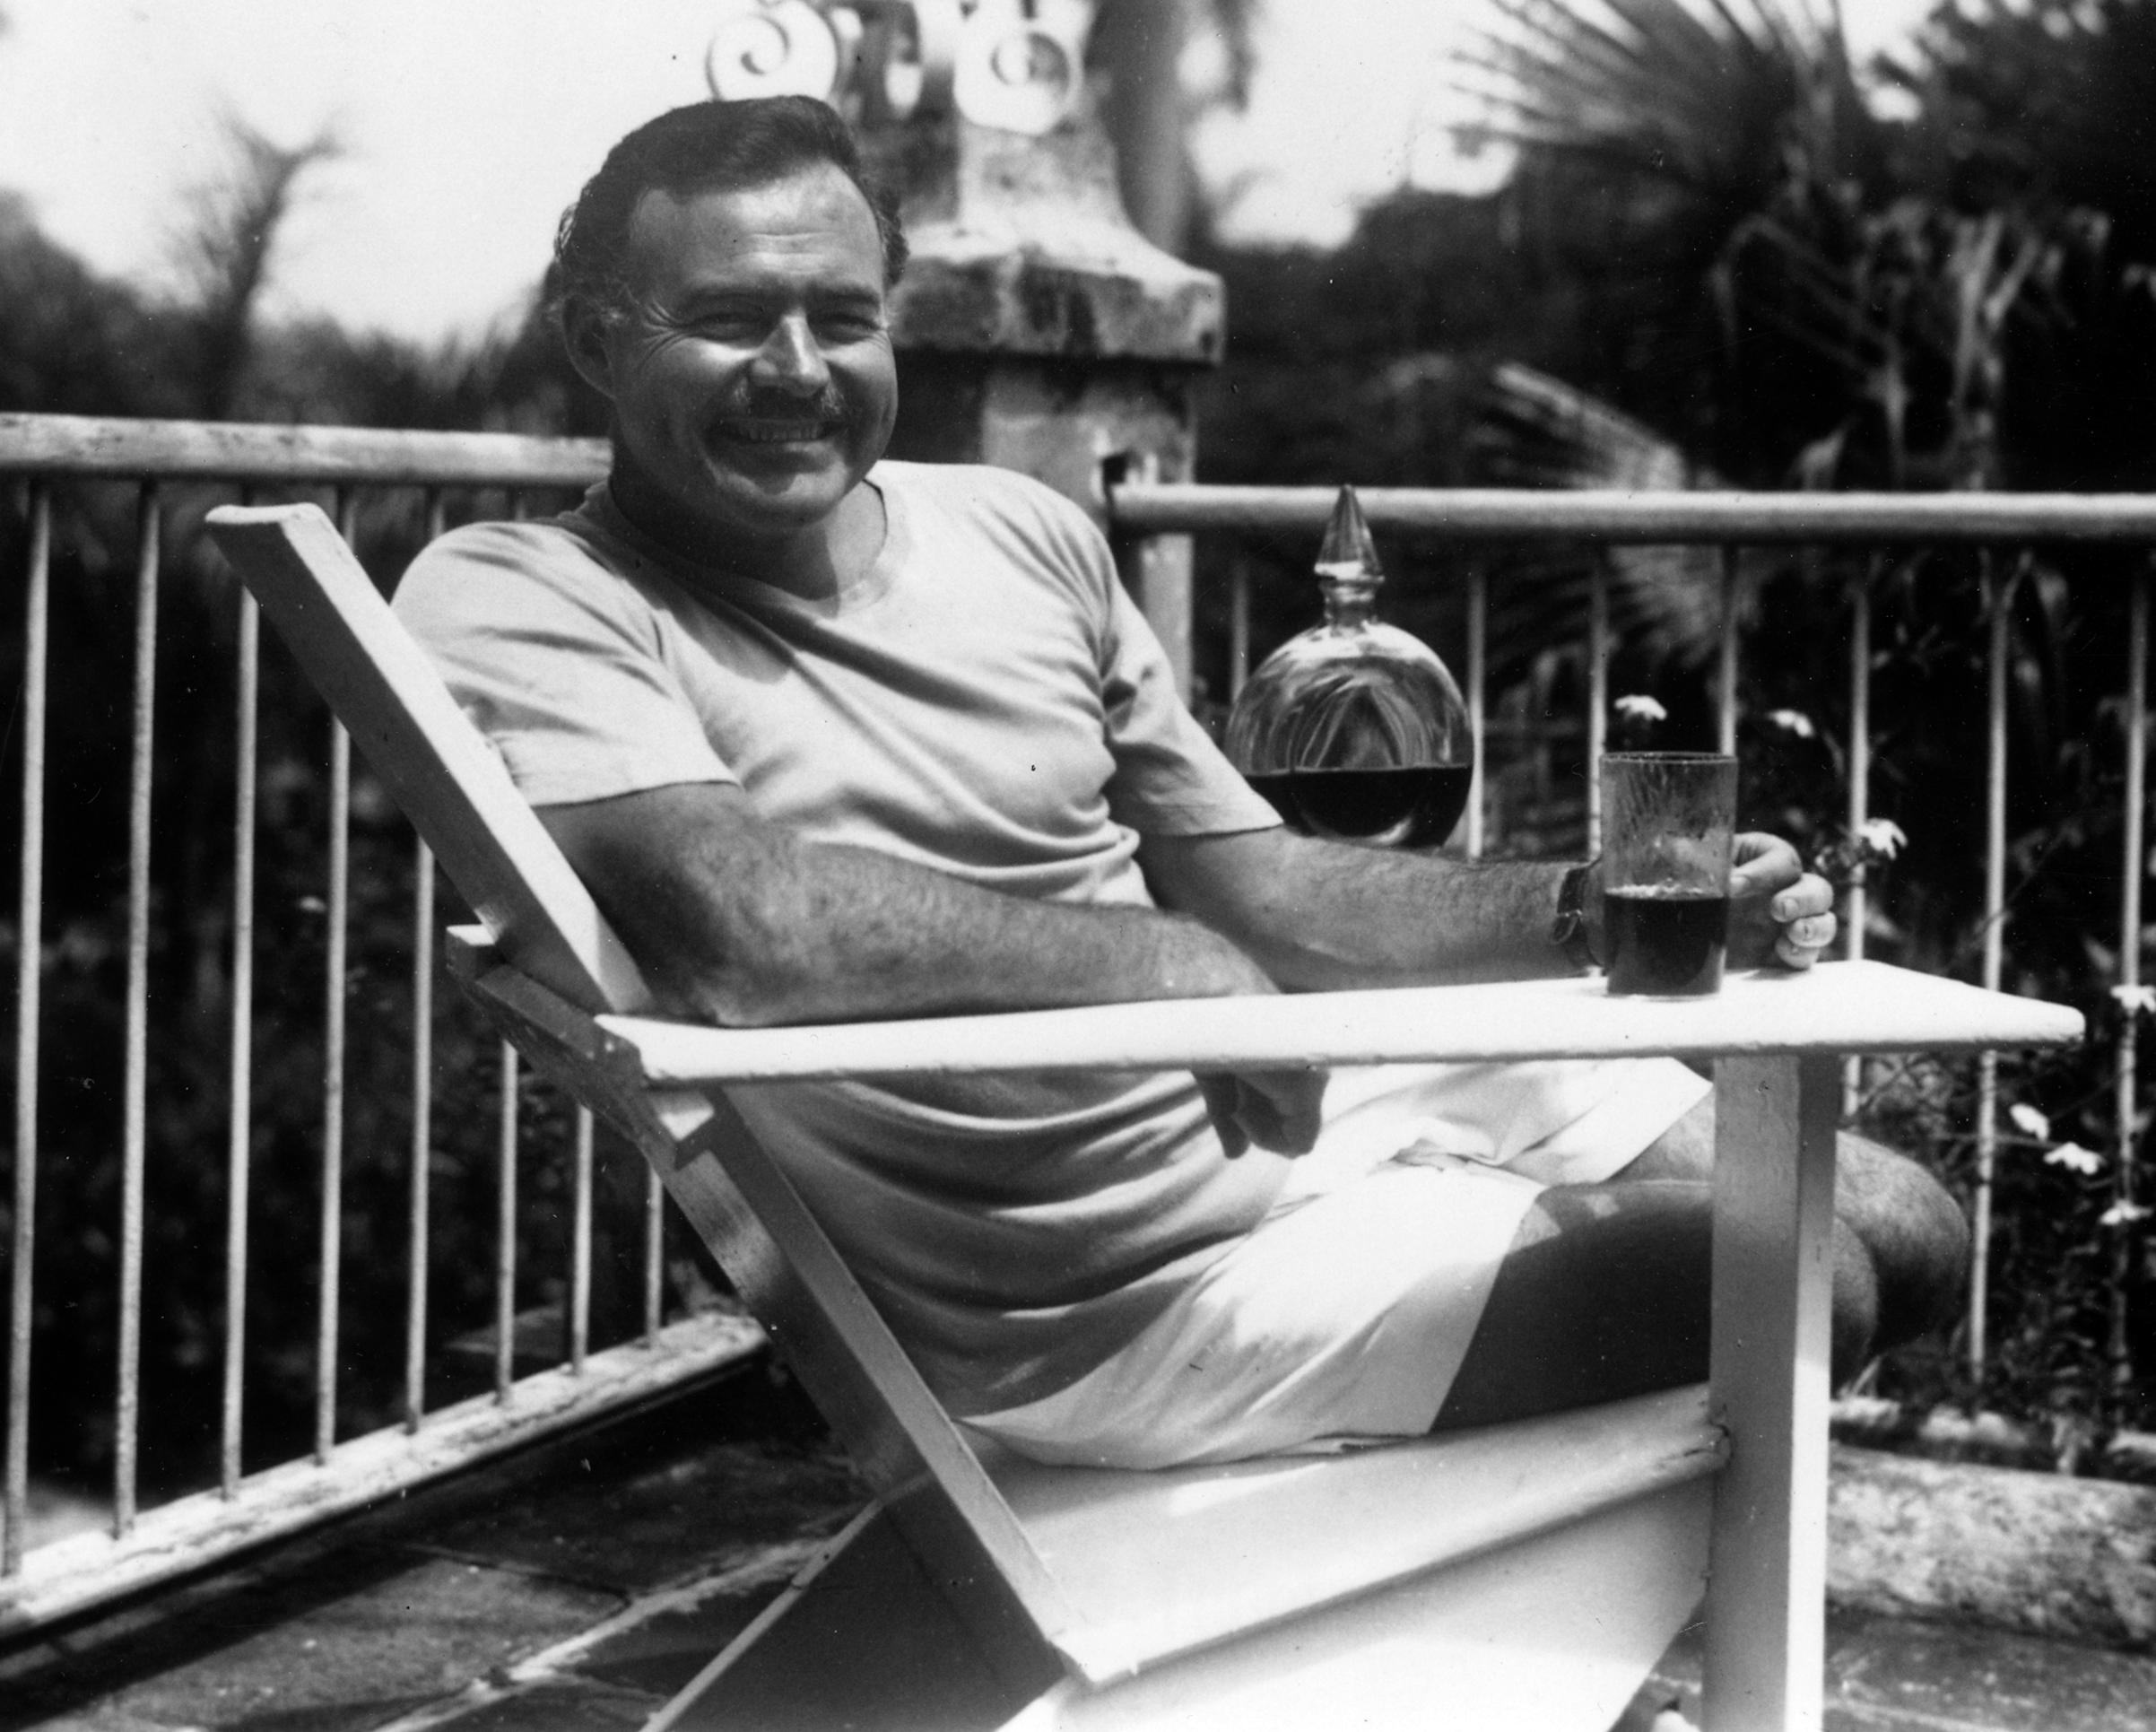 Ernest Hemingway at the Finca Vigia Cuba 1946 1 These Are The Four Types Of Drunk People, Which Are You?